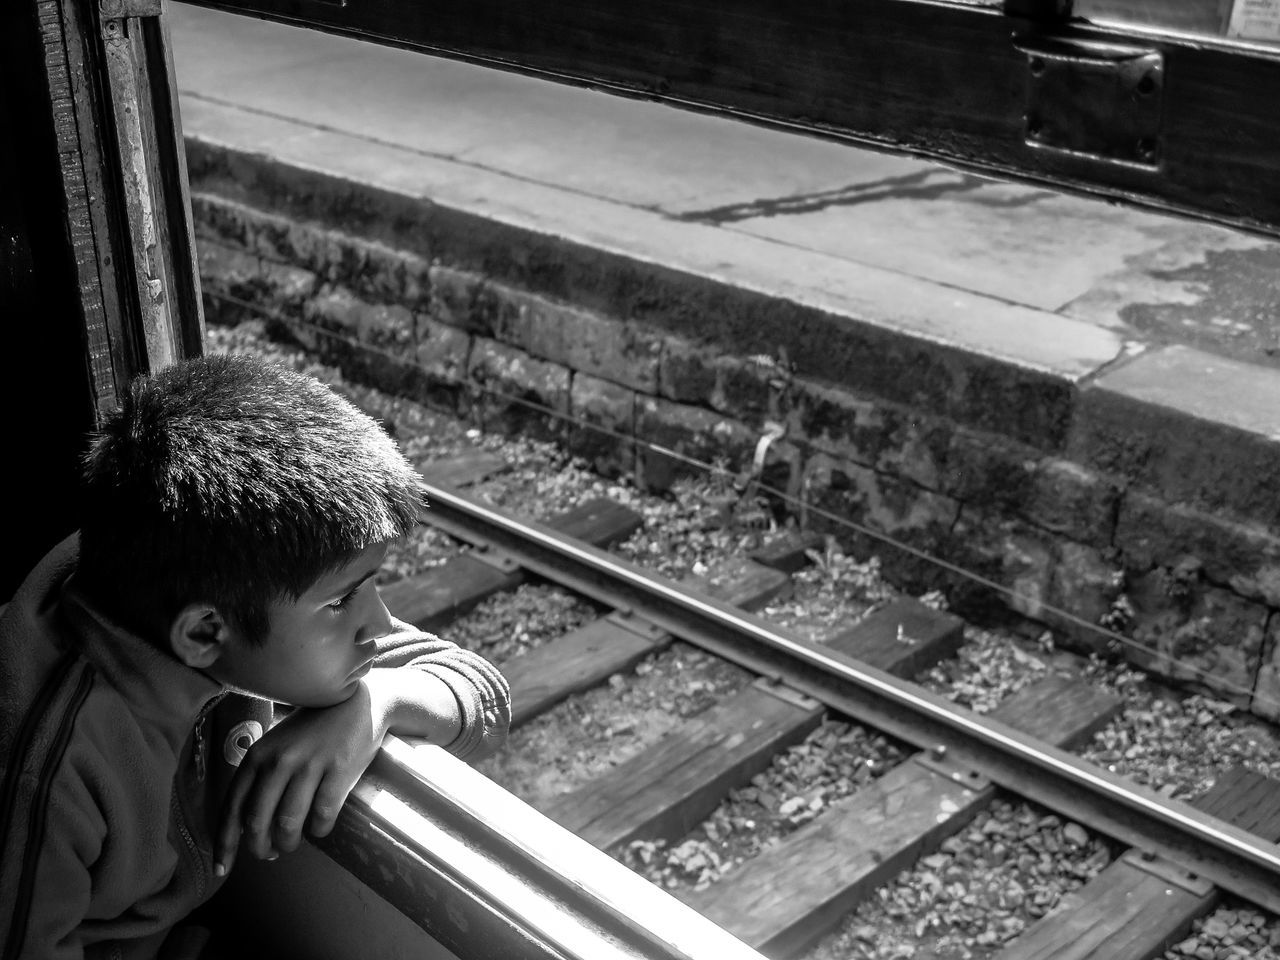 Black And White Boys Childhood Day Elementary Age High Angle View Indoors  Kid Lifestyles Looking Monochrome One Person People Rail Transportation Railroad Track Real People Sitting Sri Lanka Train Train Station Transportation Travelling Vintage Wagon  Window